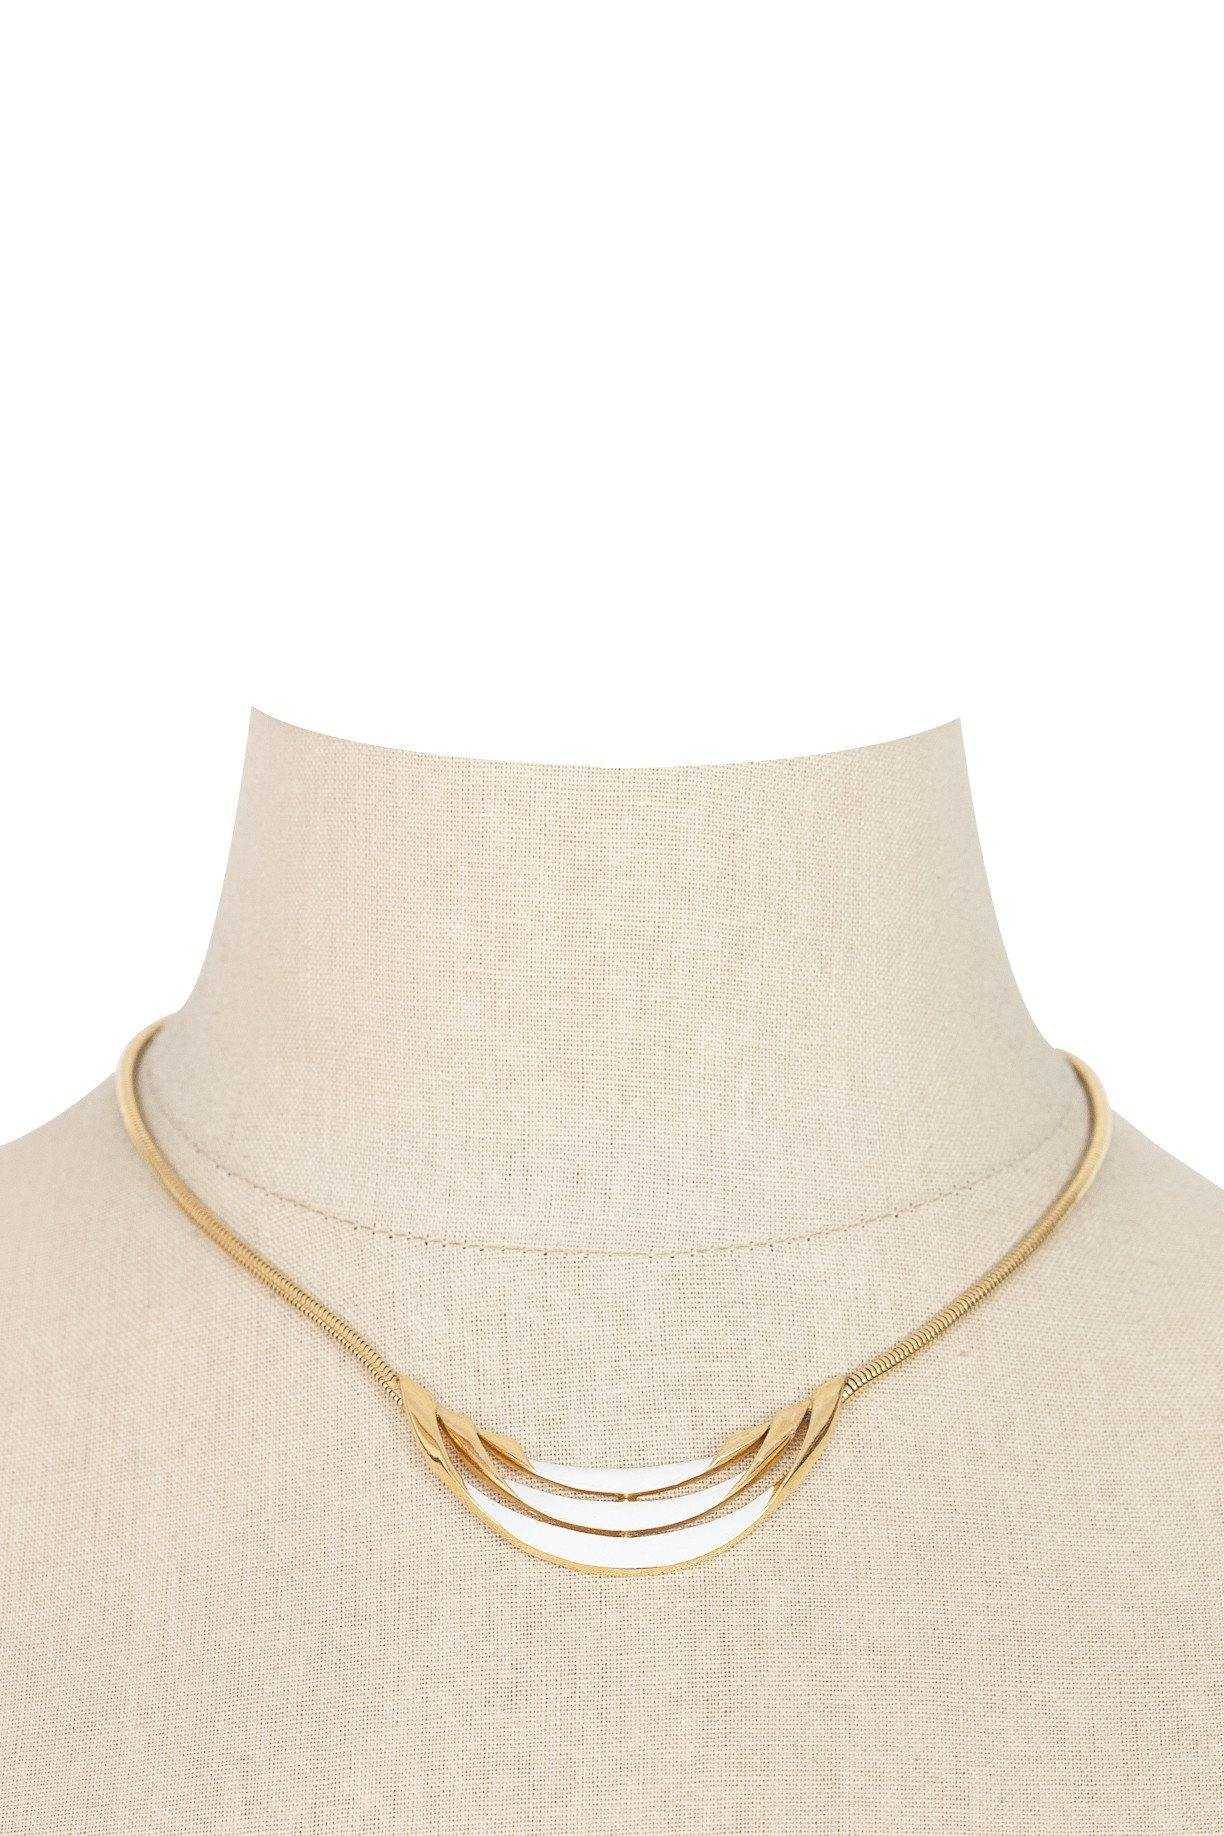 60's__Trifari__White Bar Necklace